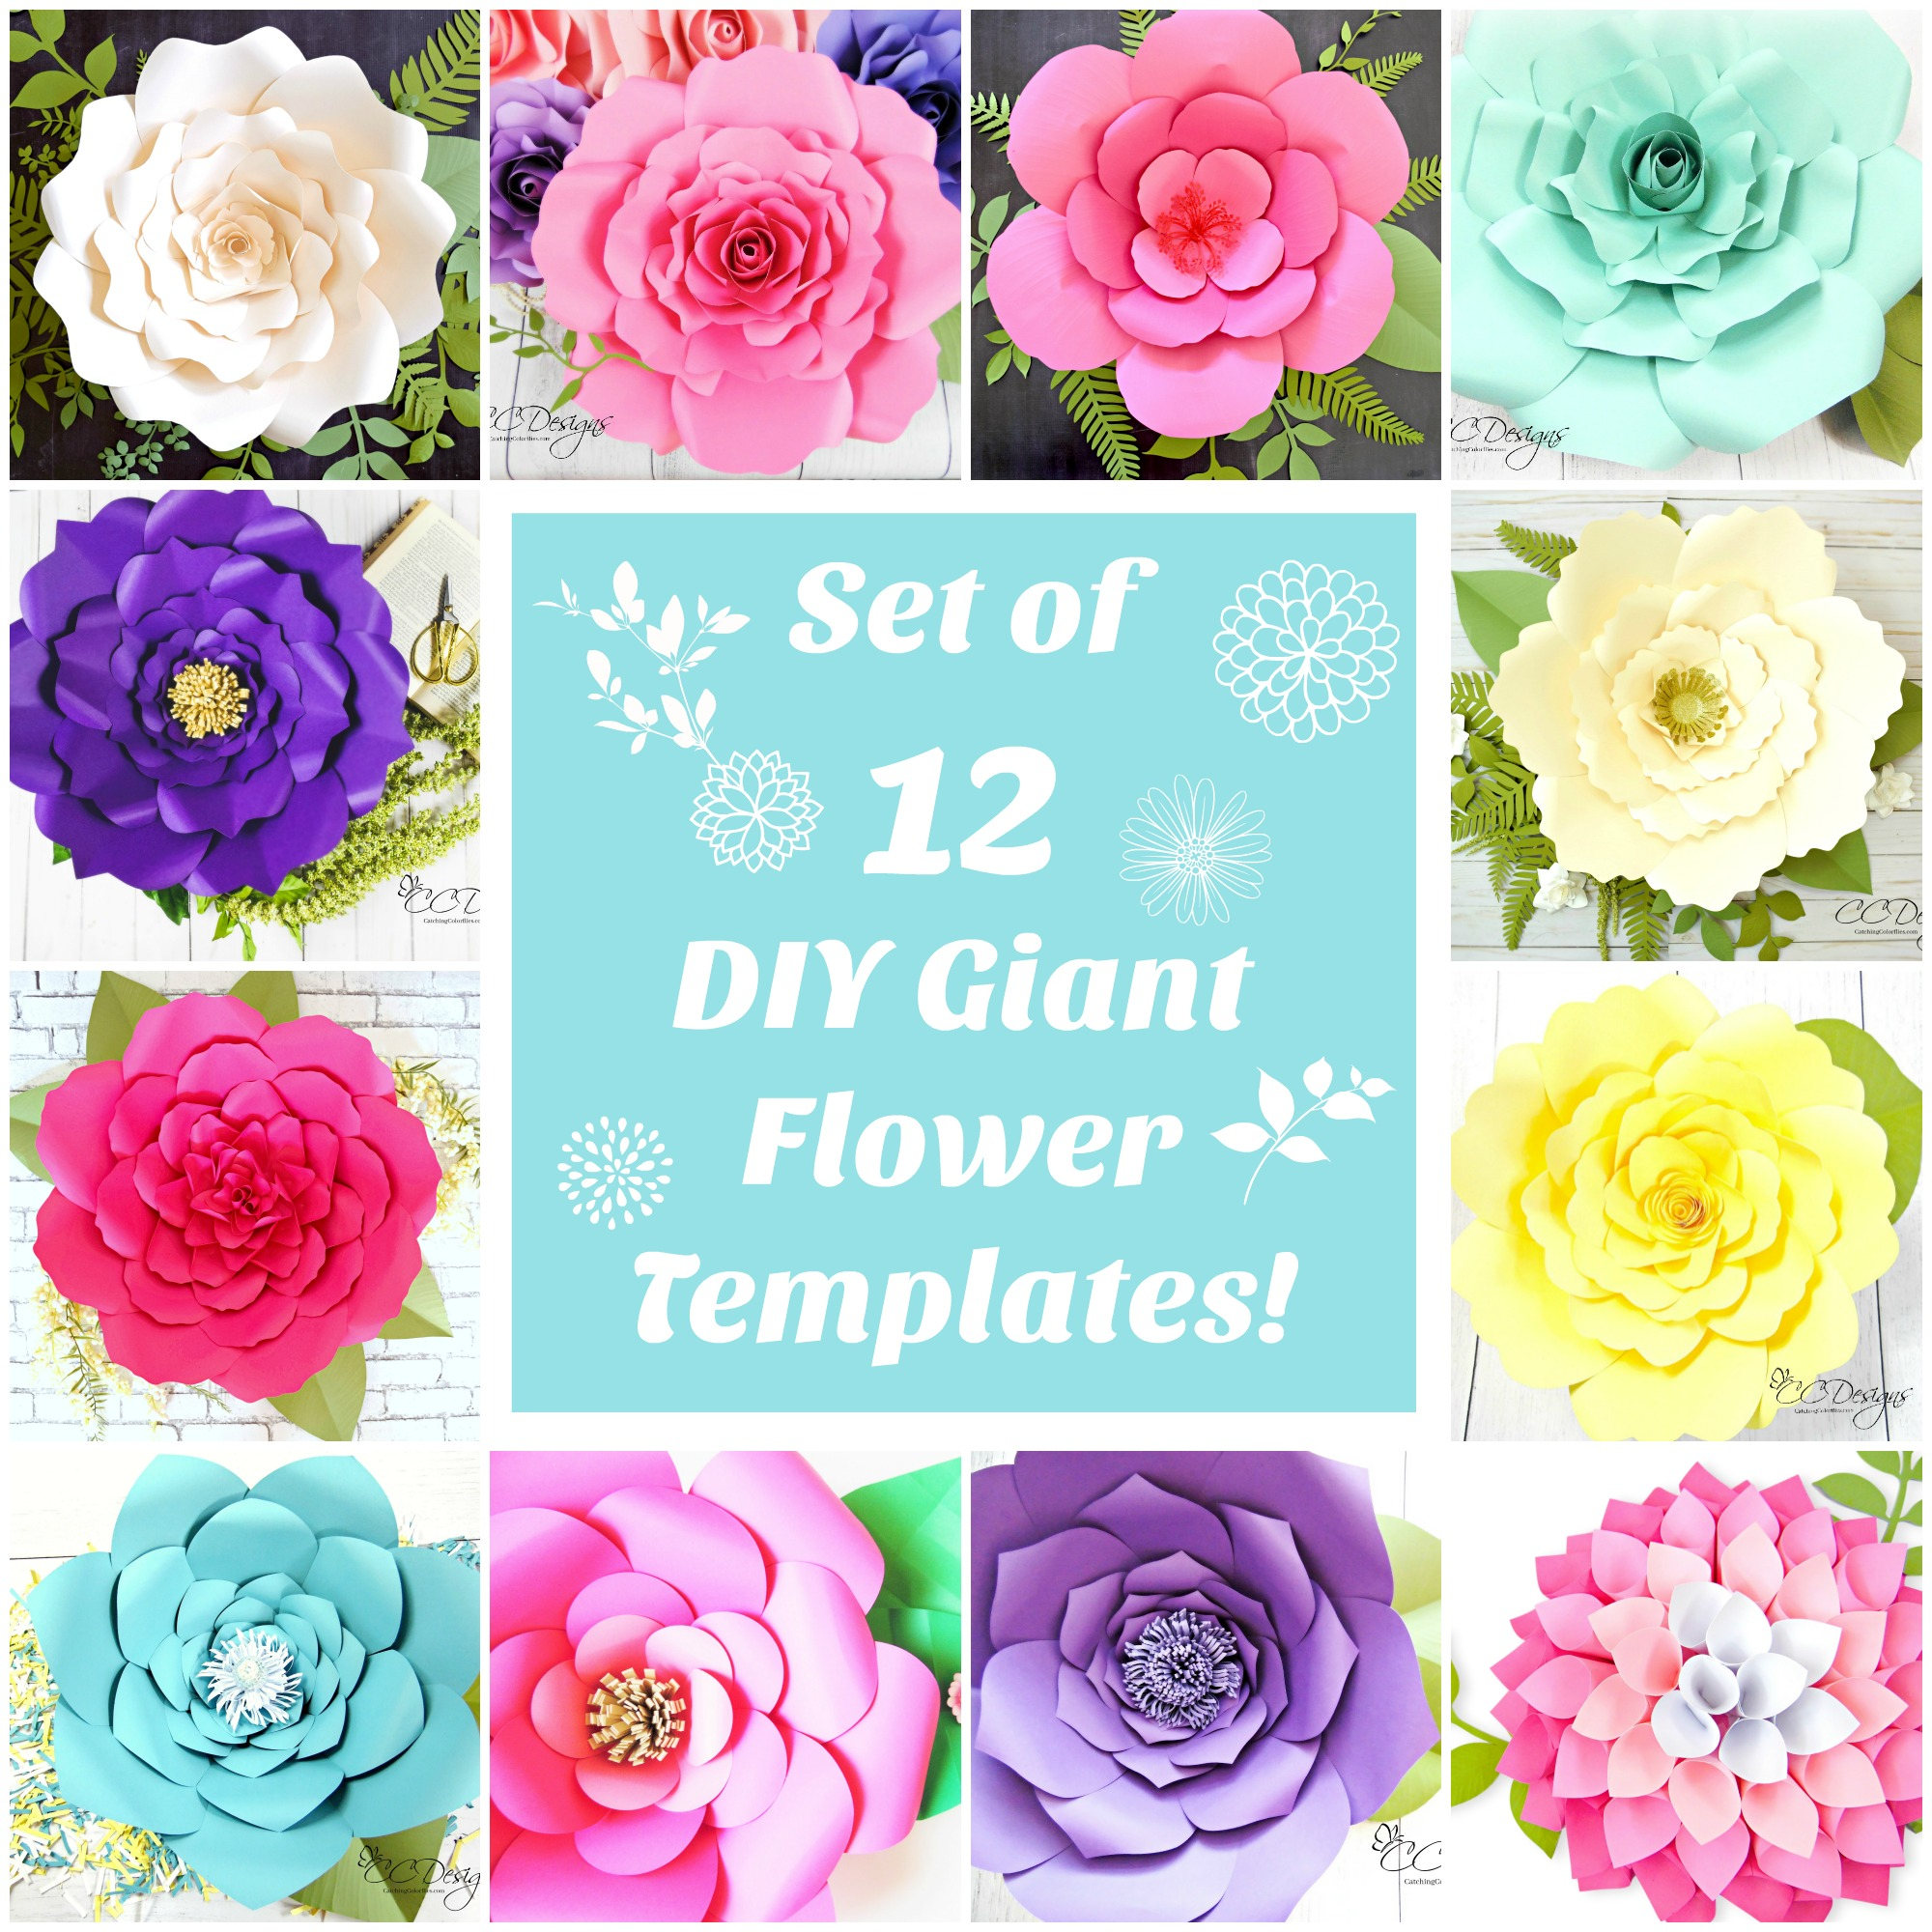 Giant Flower Template | Paper Flowers Large Paper Flowers Template Patterns Etsy